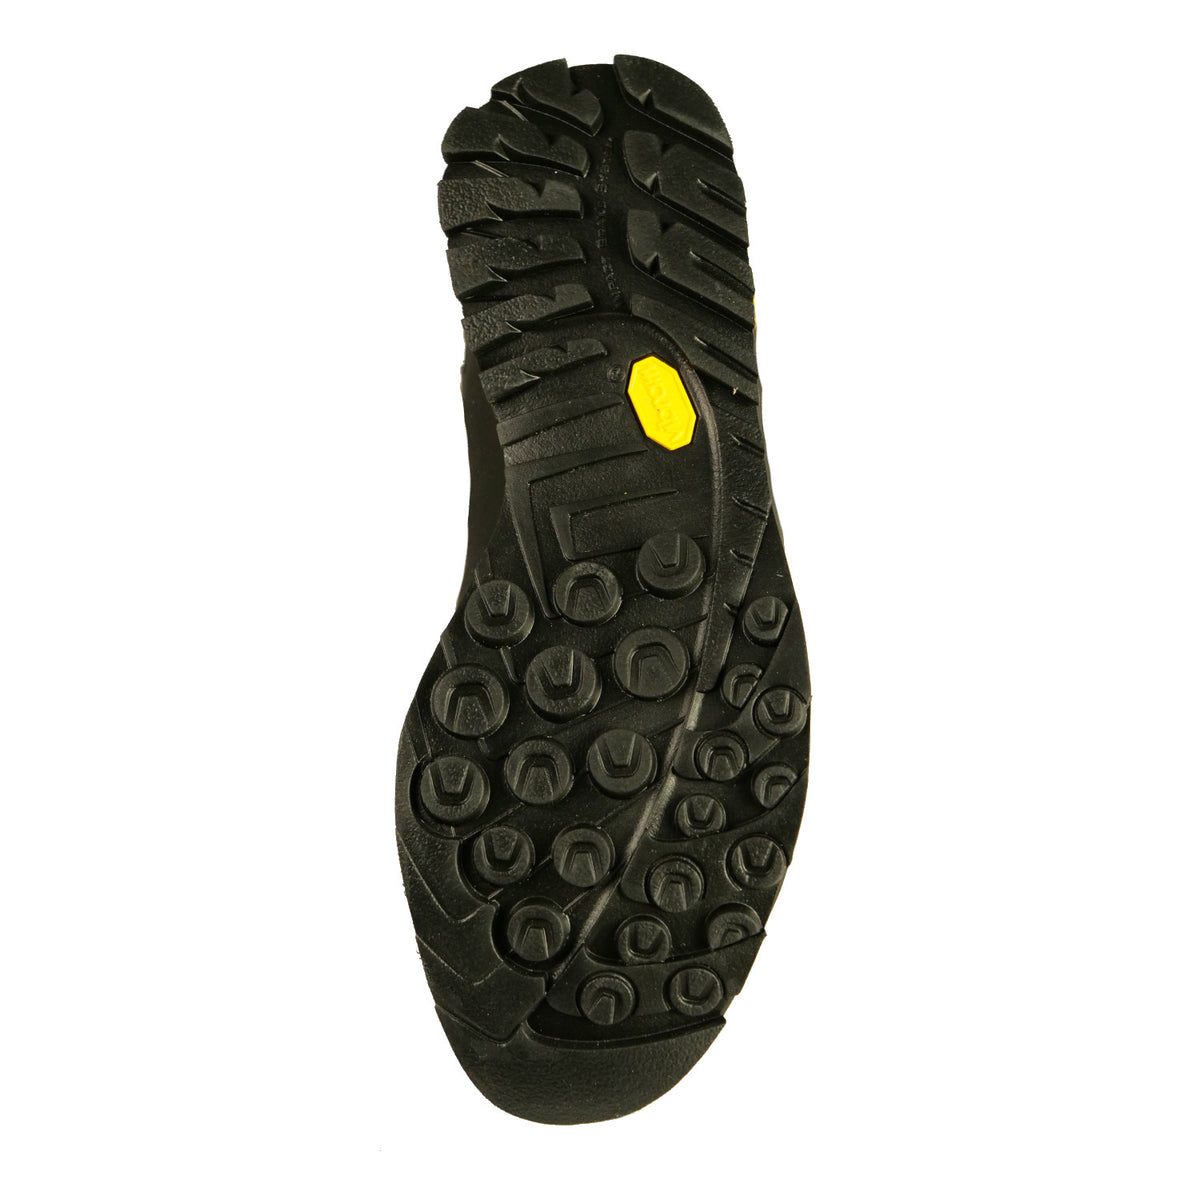 La Sportiva Boulder X approach shoe, view of the sole